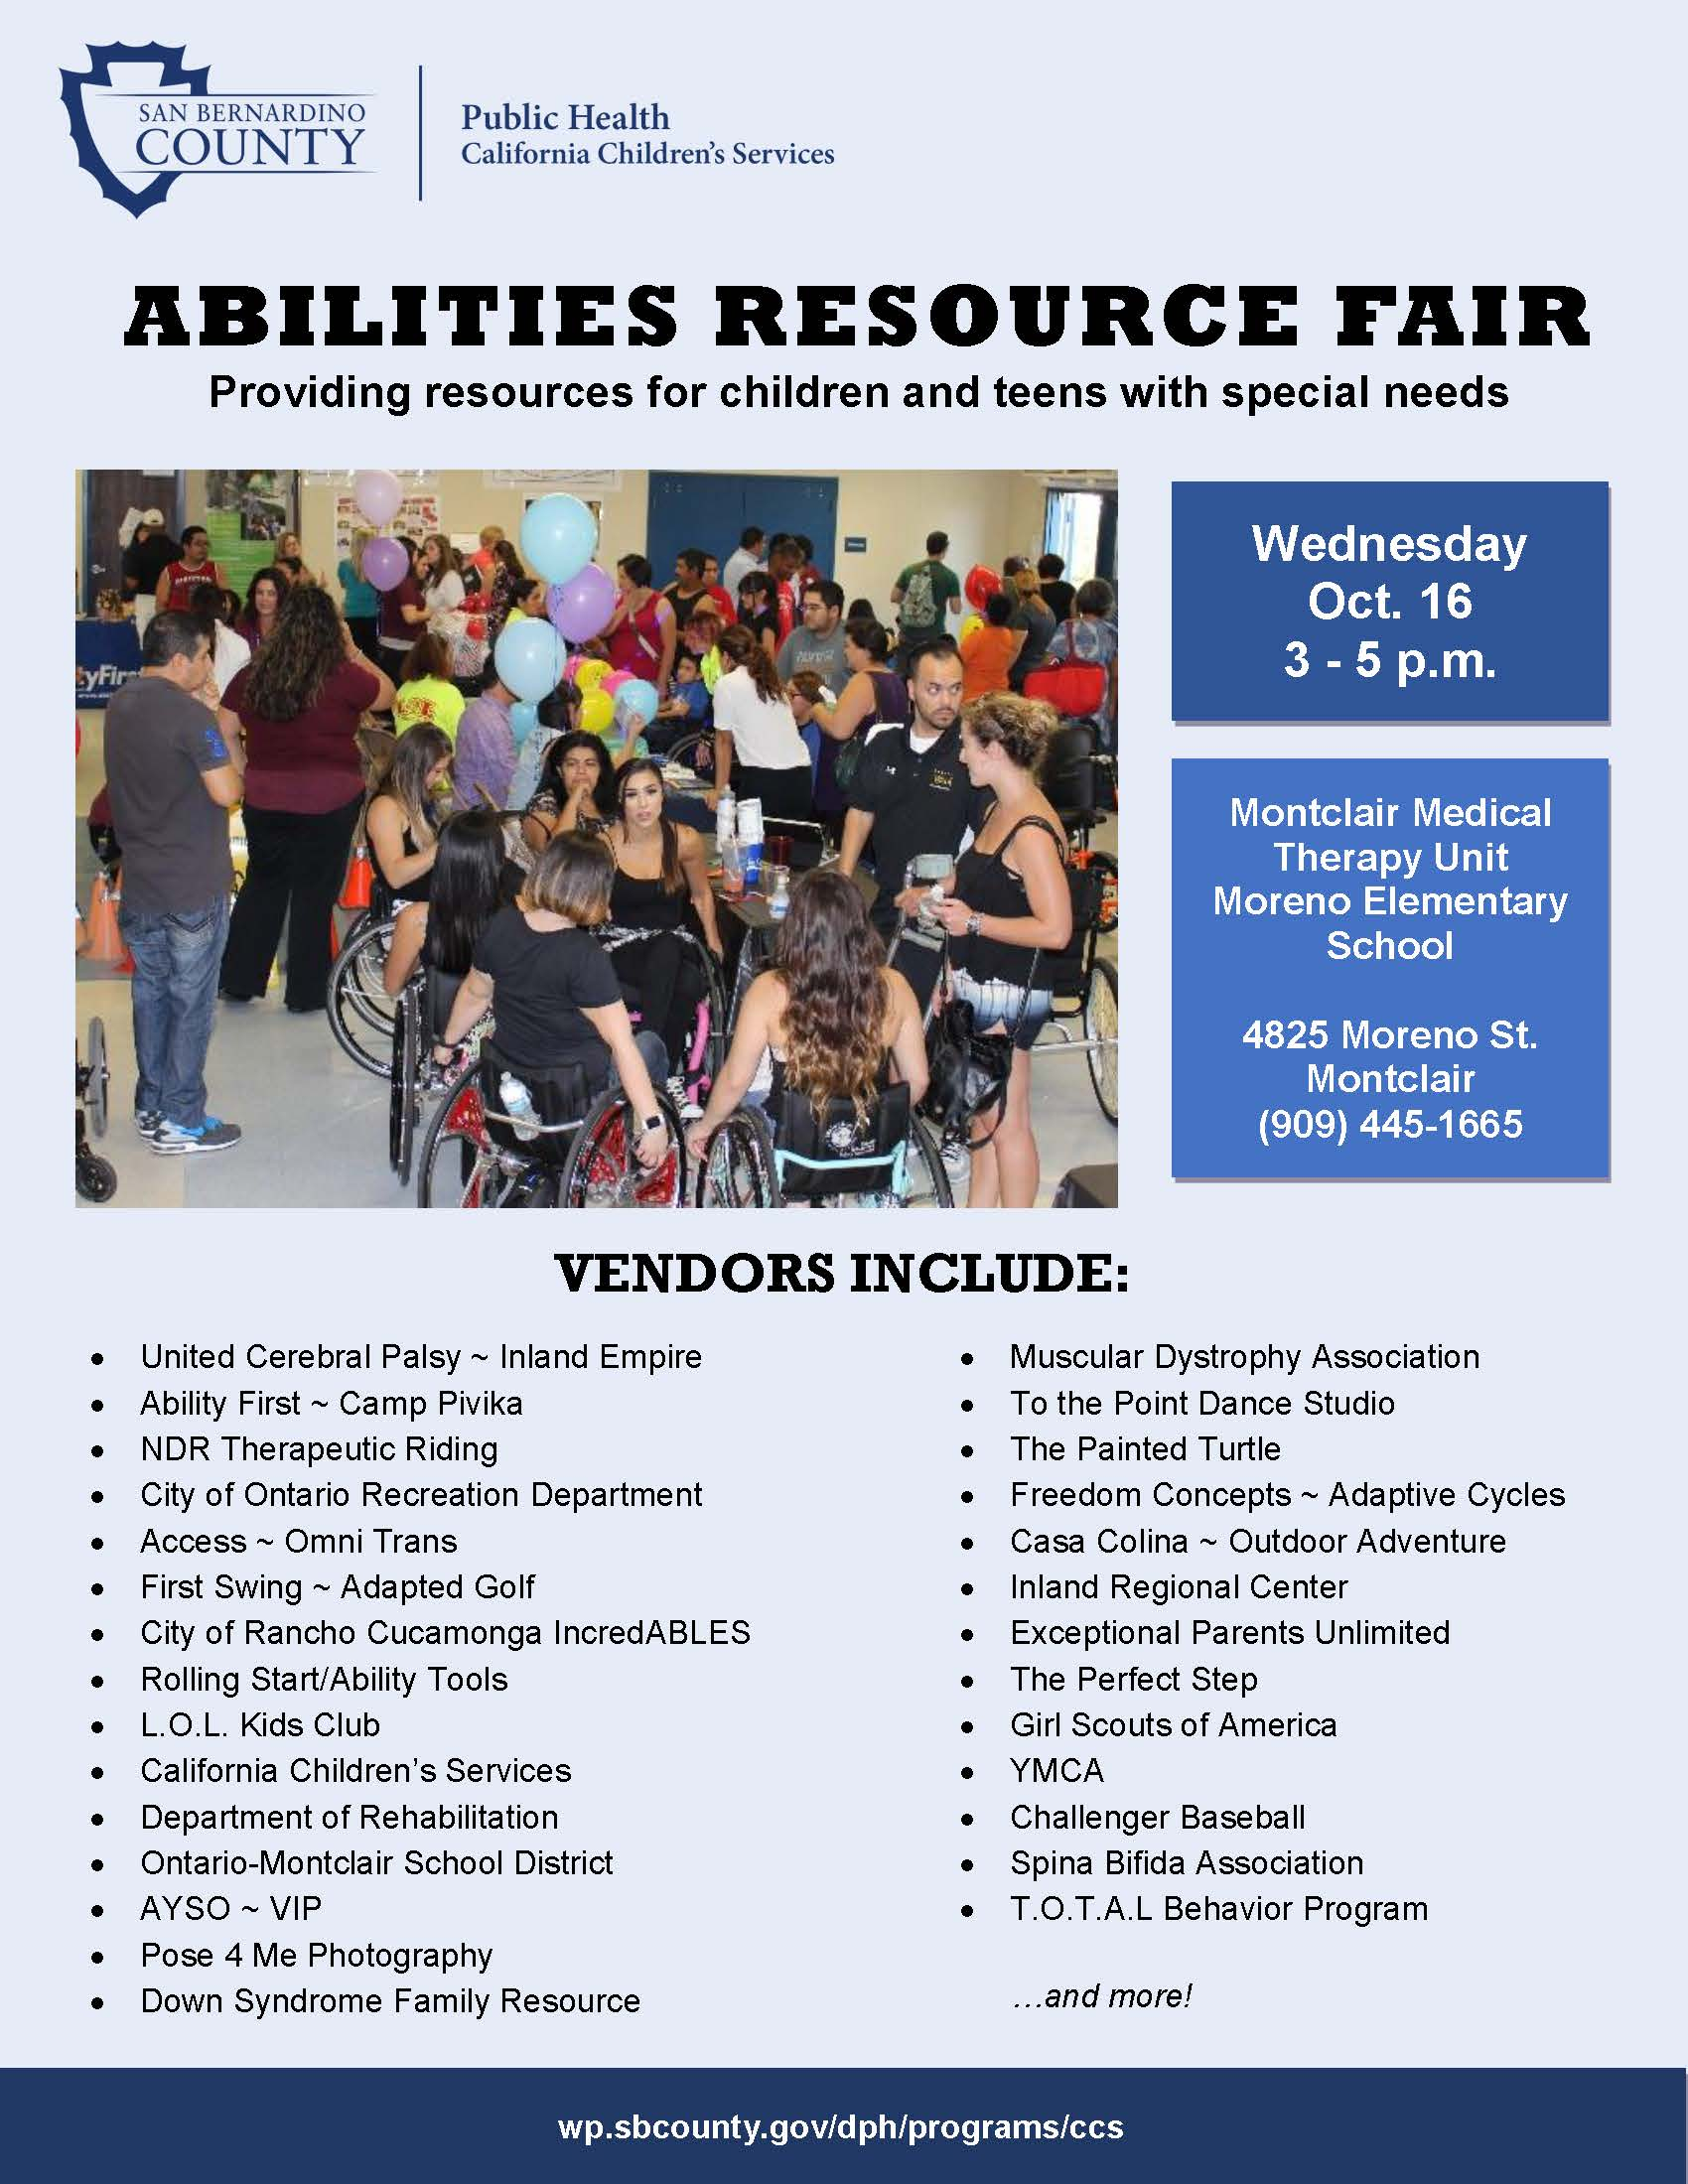 2019 Abilities Resource Fair Flyer